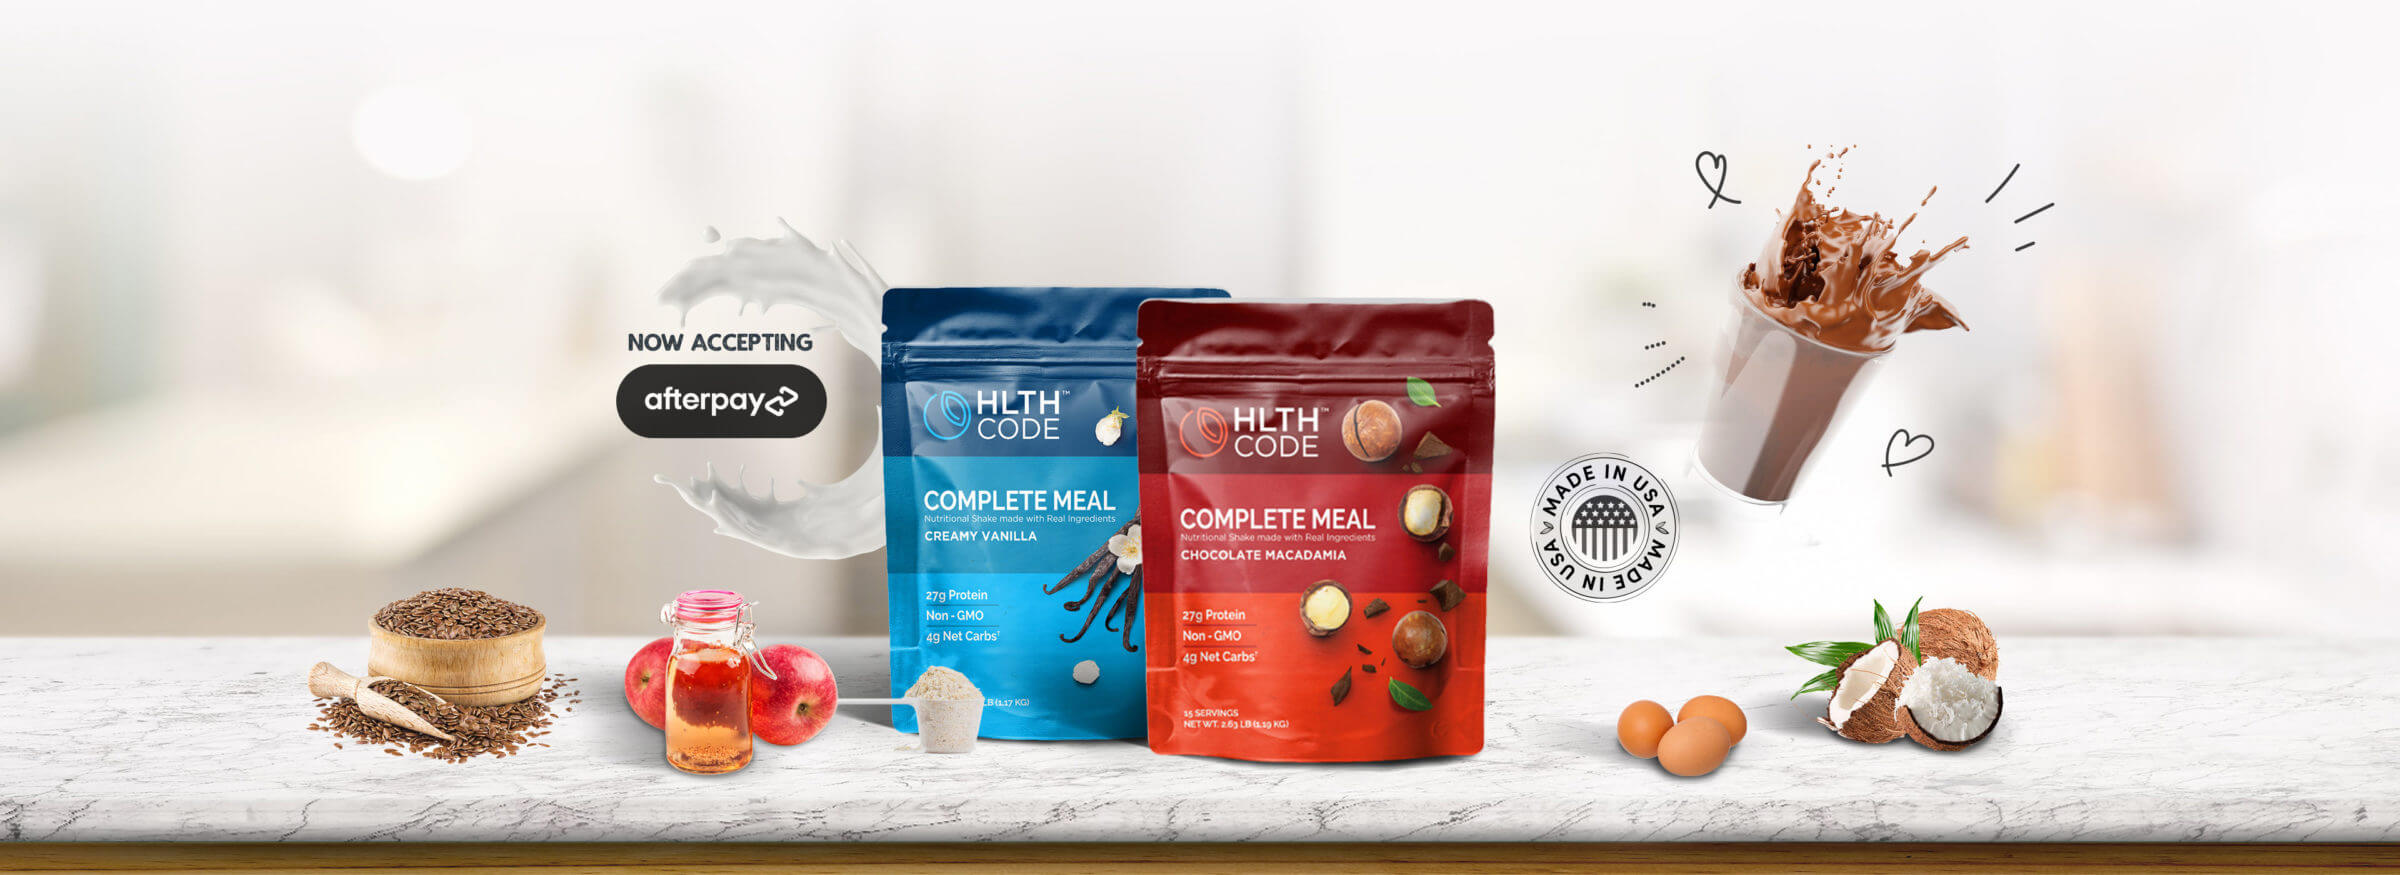 HLTH Code Full Meal Replacement Giveaway